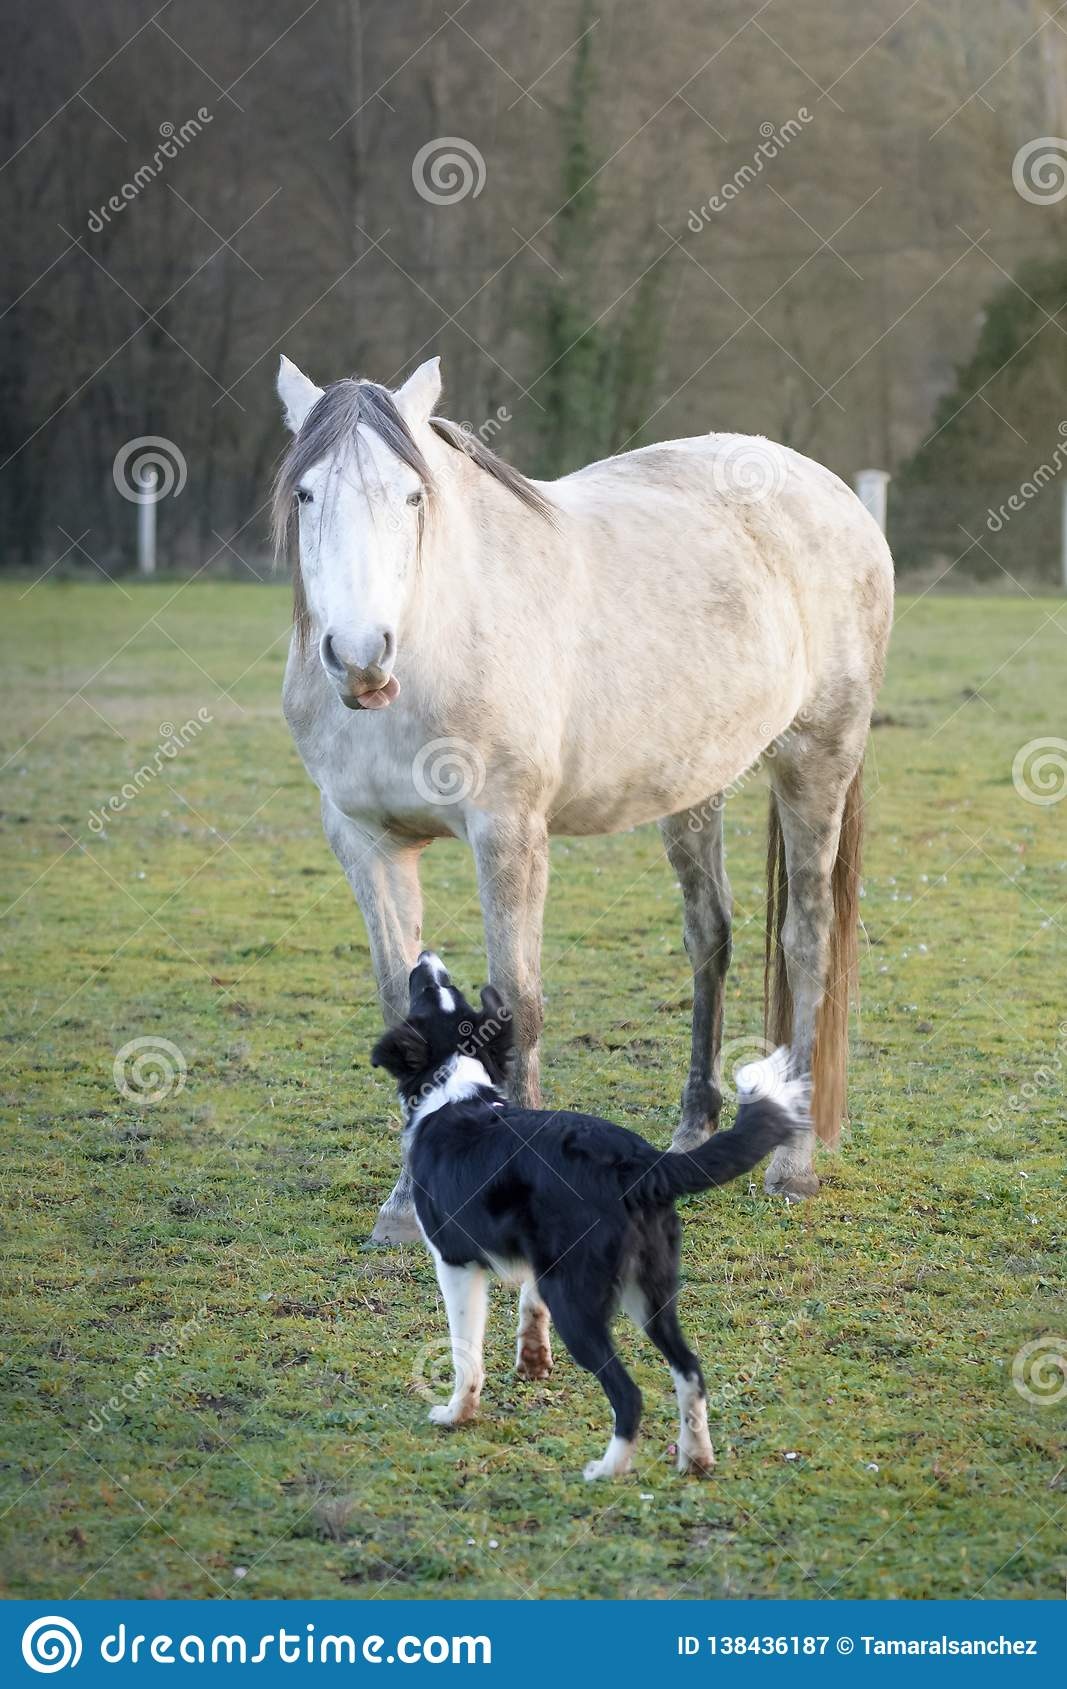 312 Hilarious Horse Photos Free Royalty Free Stock Photos From Dreamstime